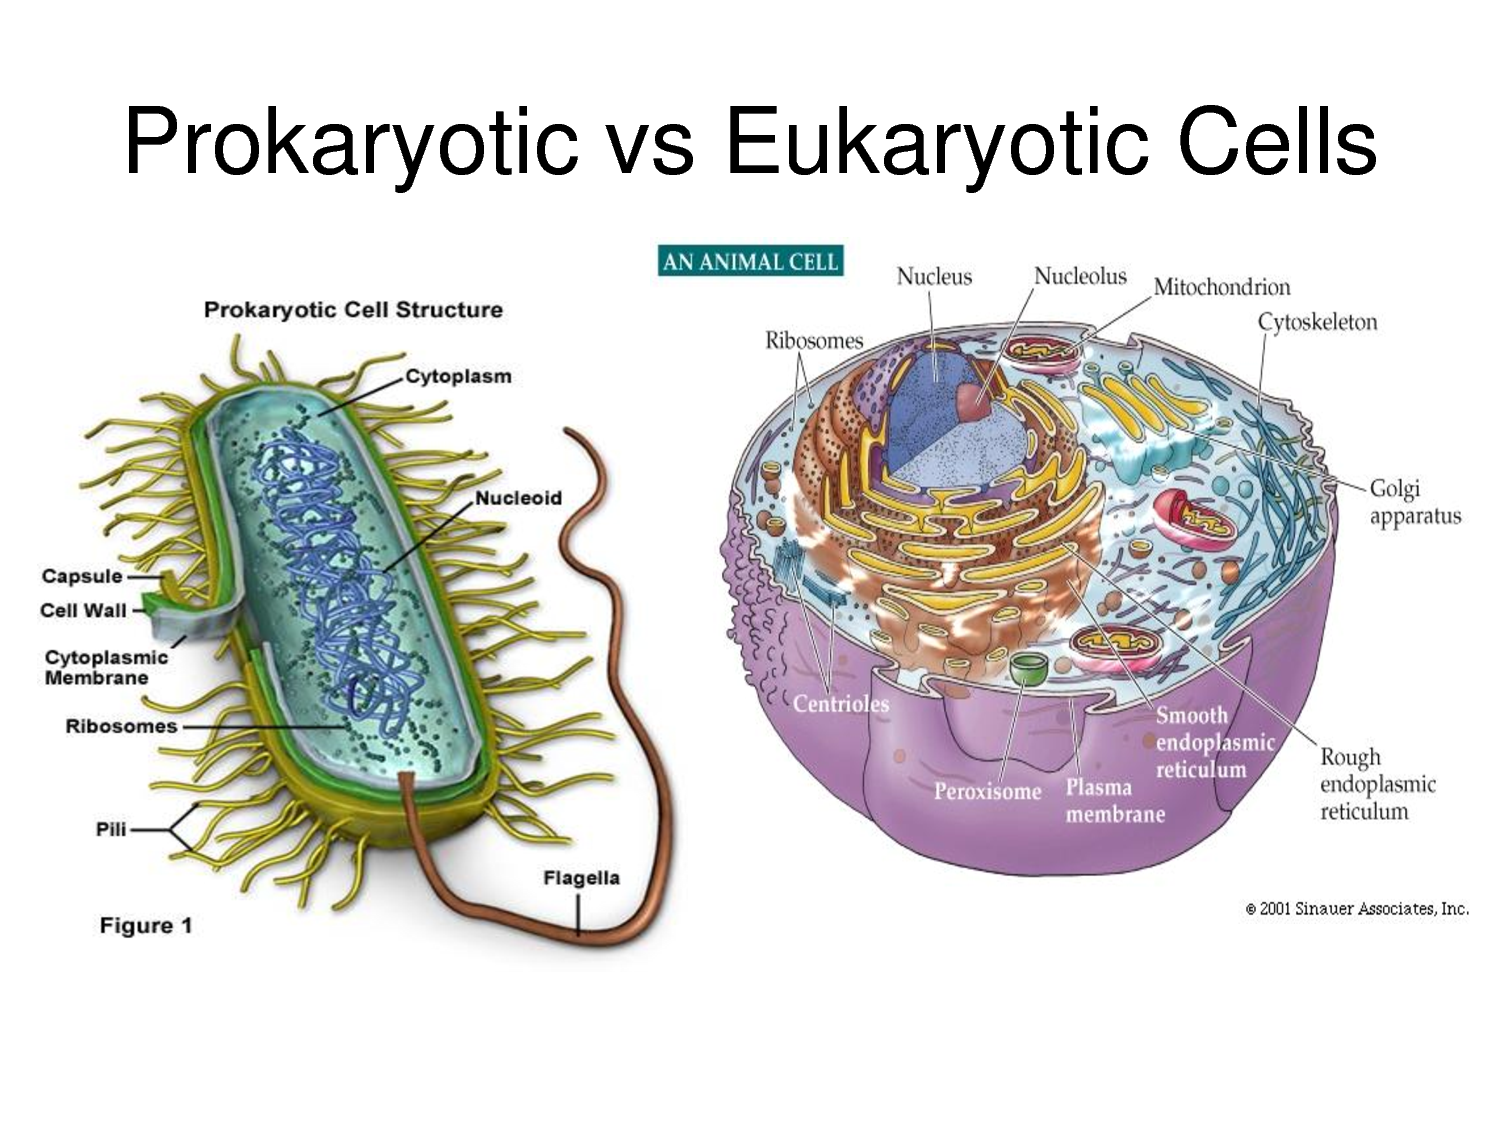 medium resolution of  cell activities depends on the activities of subcellular structures within the cell which are the organelles nucleus and plasma membrane